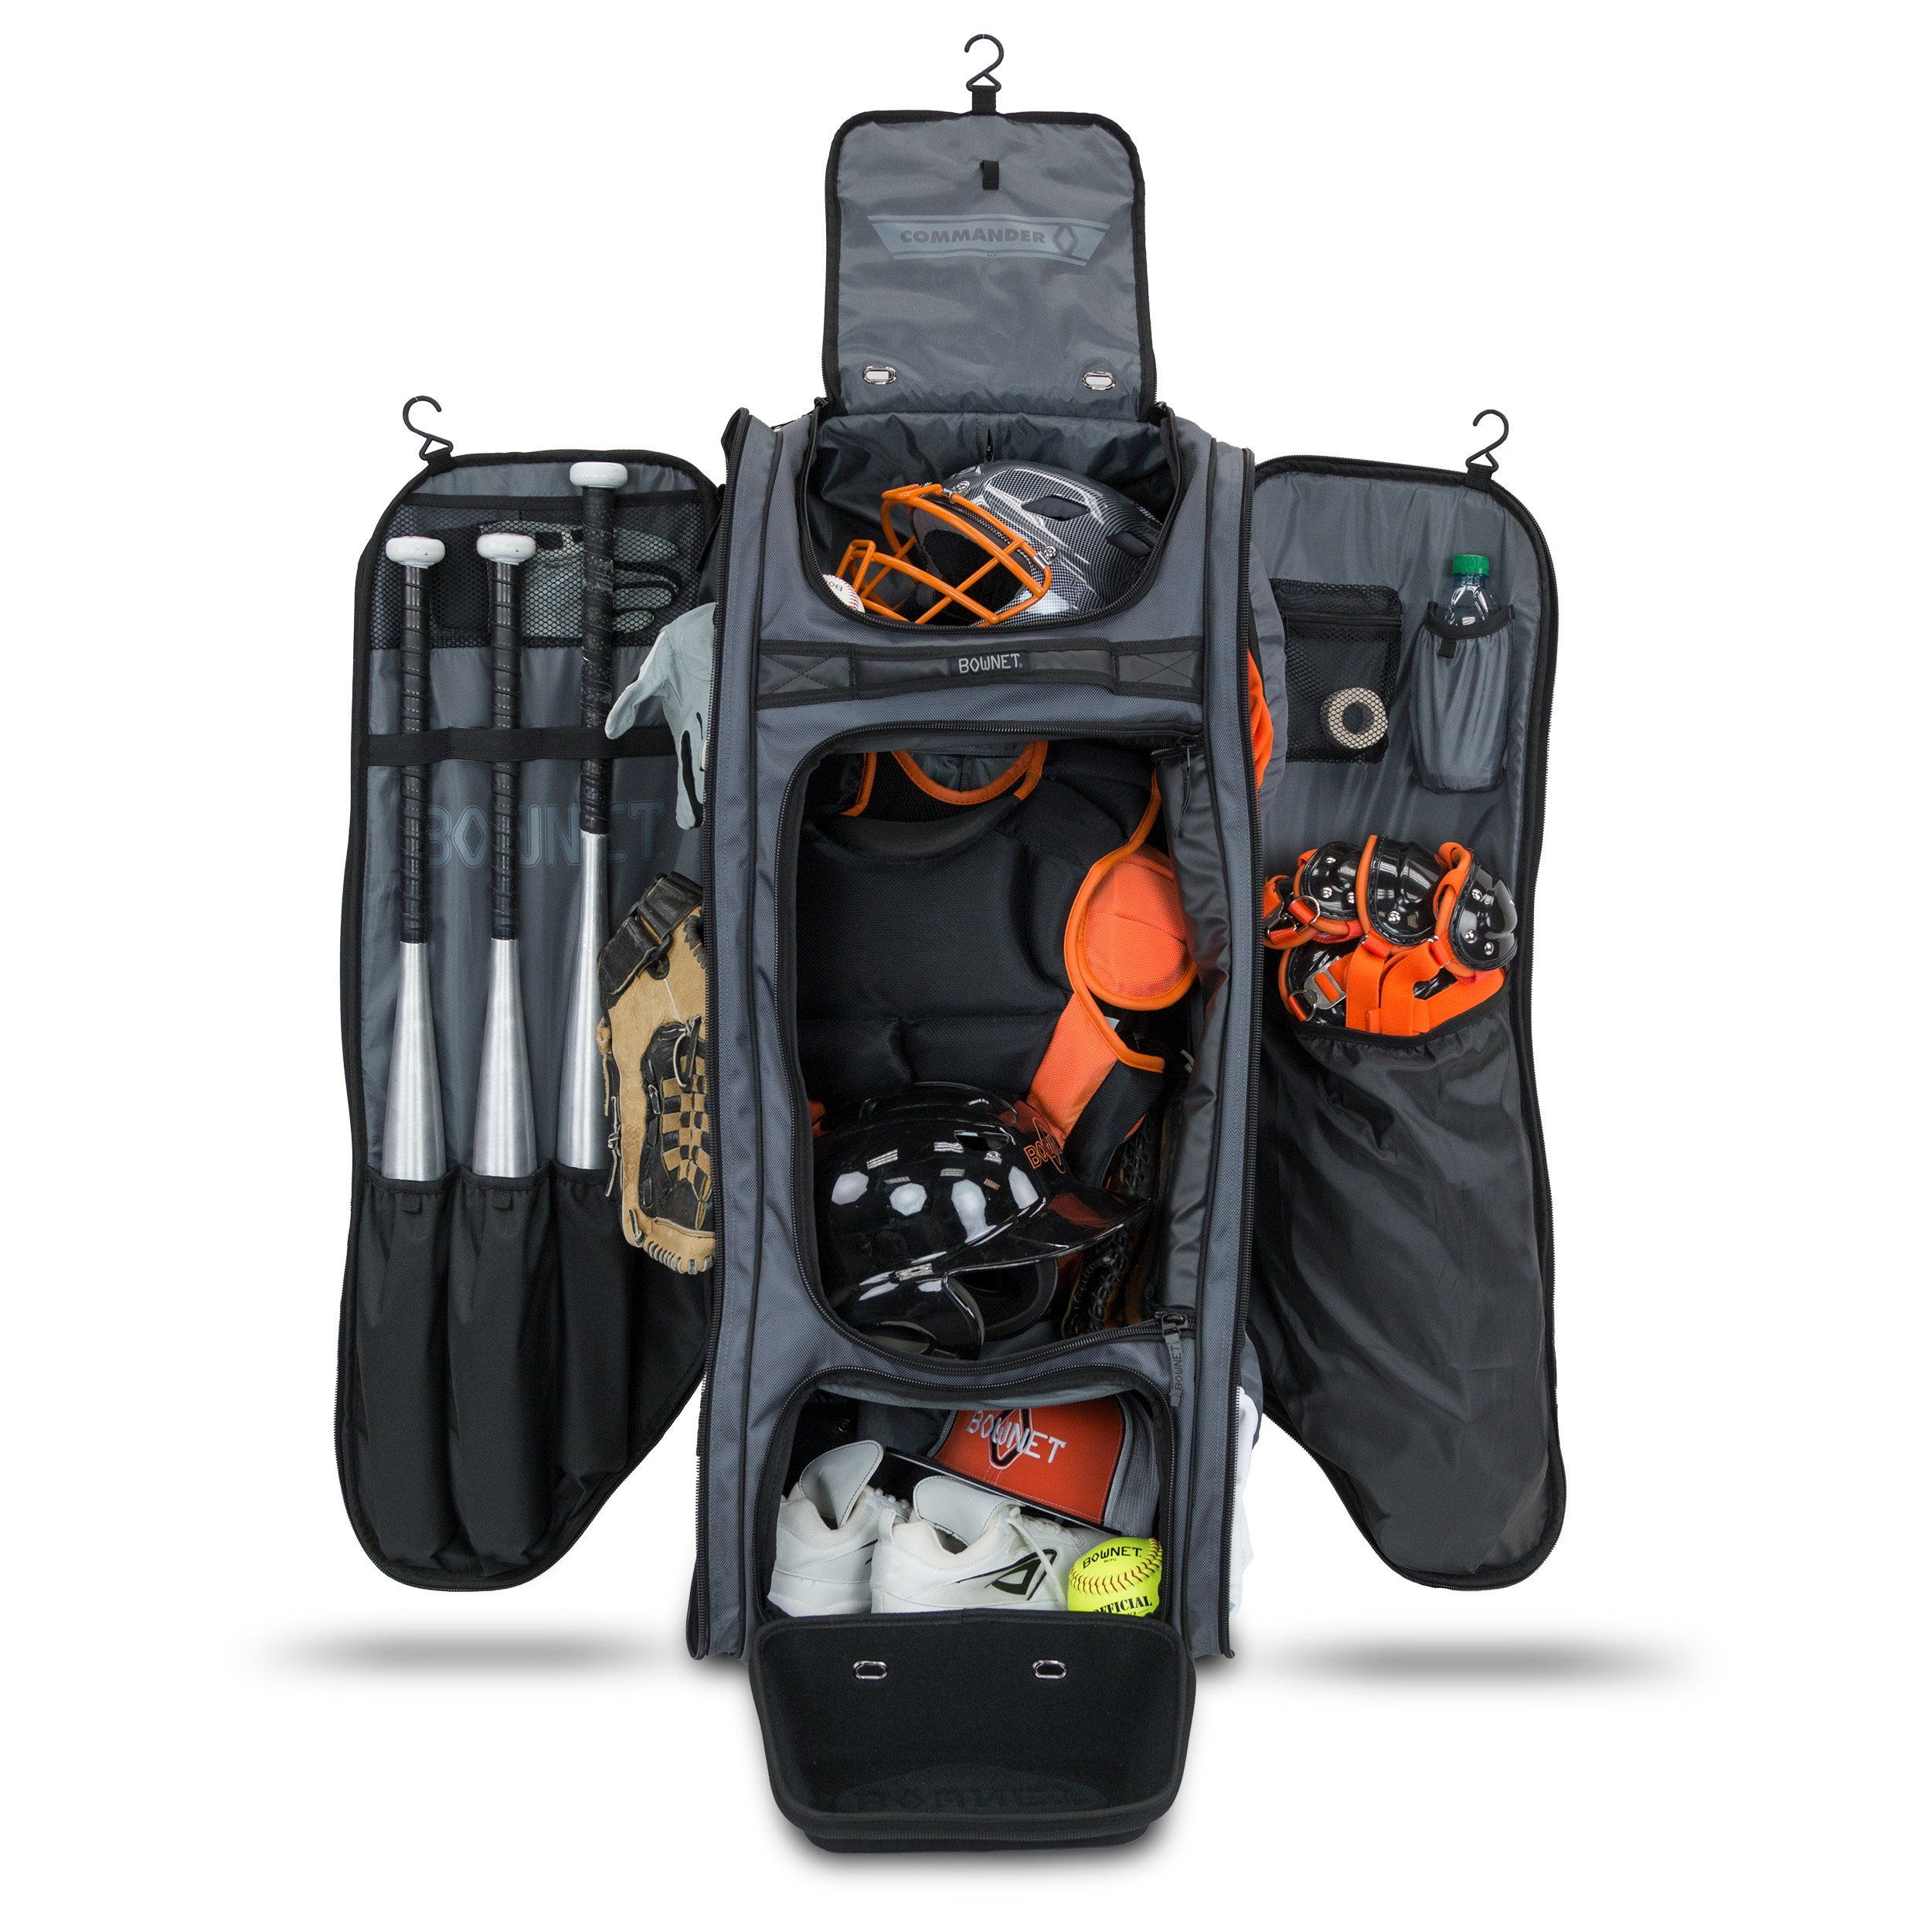 8590c1dd5216 The Commander - The Ultimate Catcher s Bag!